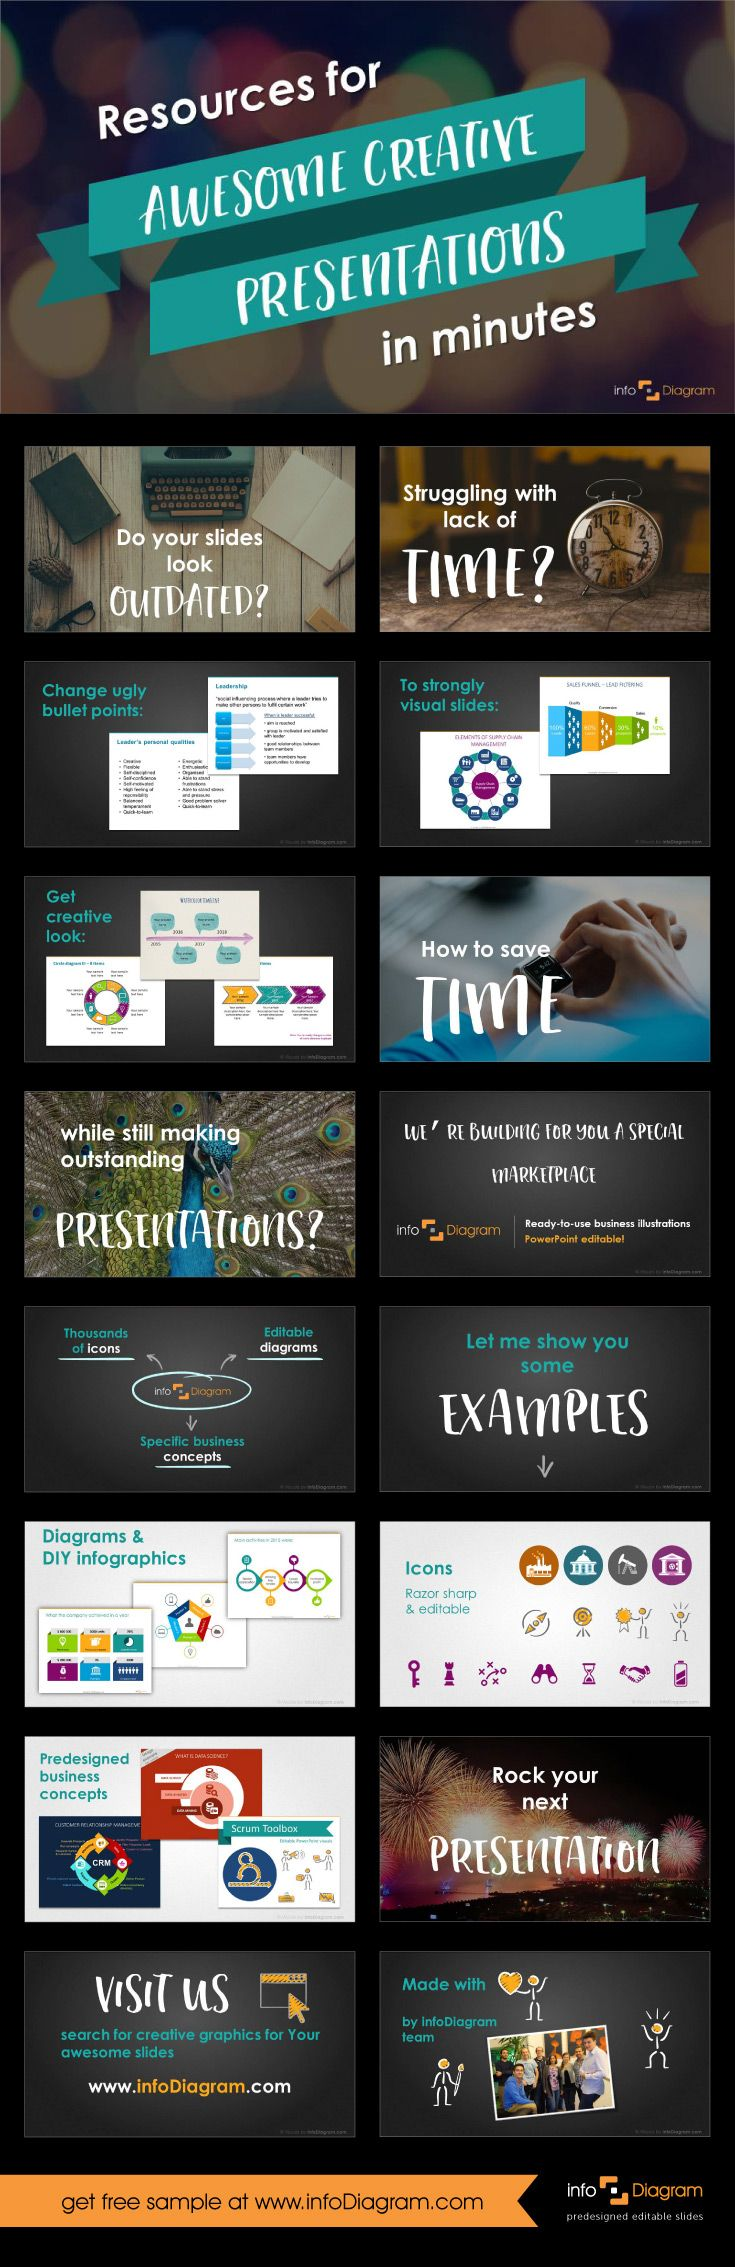 Resources for Awesome creative presentations in minutes